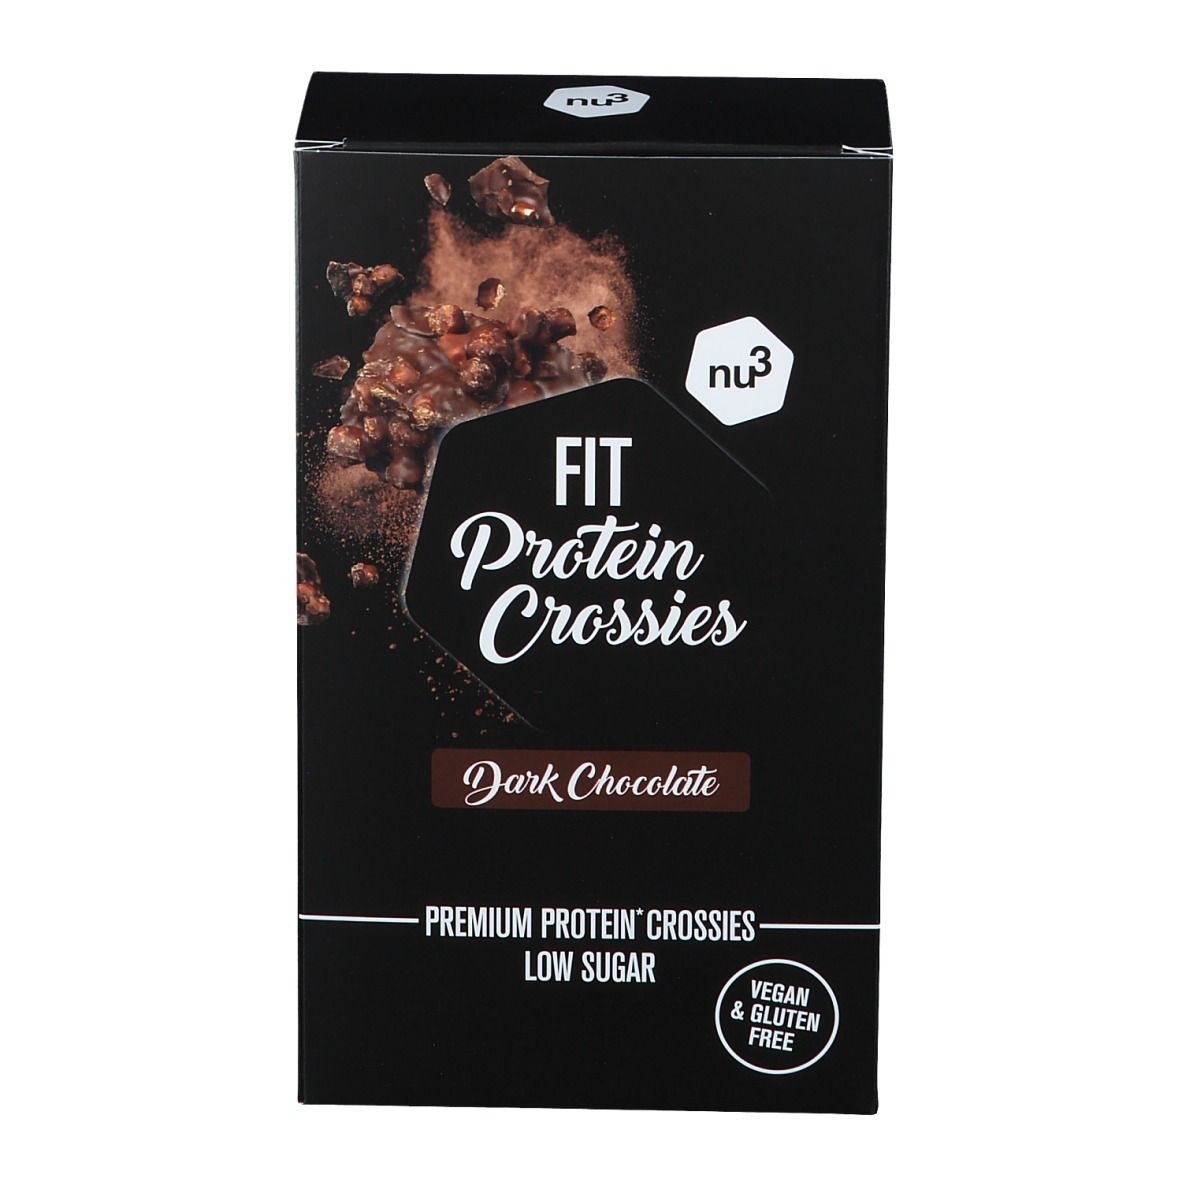 nu3 FIT Protein Crossies